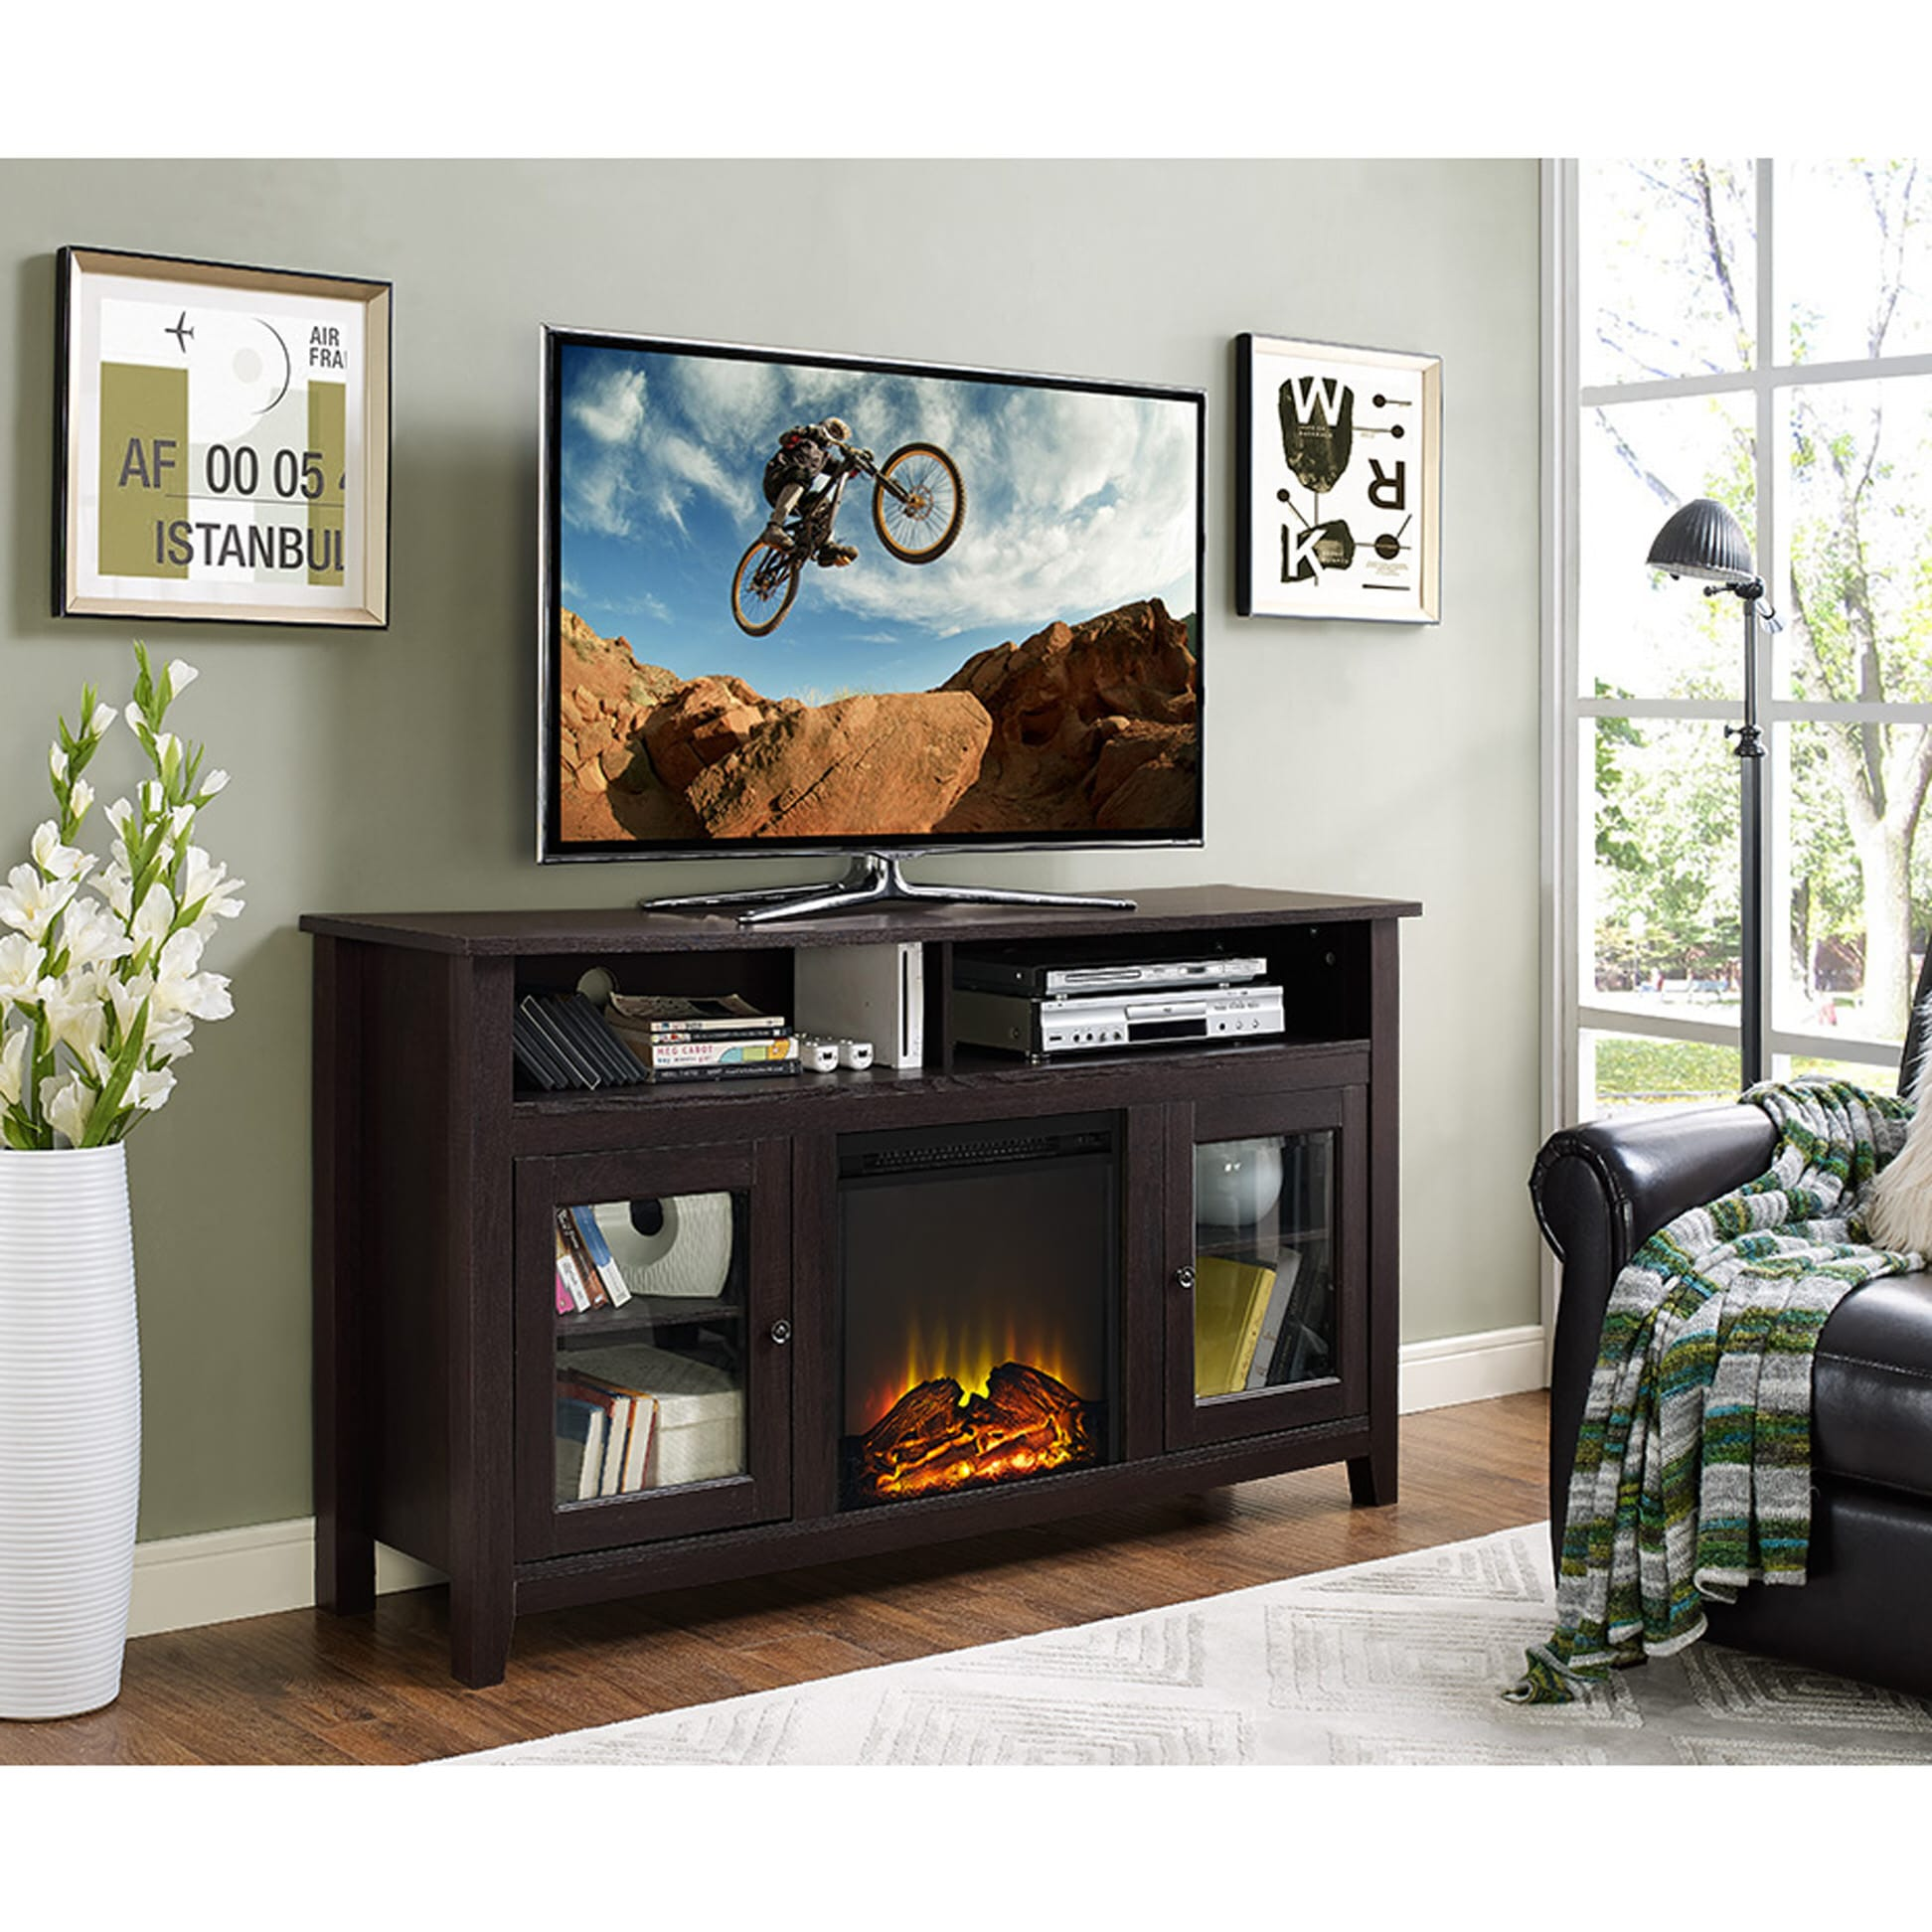 Wasatch 58 Inch Highboy Fireplace Tv Stand Espresso By